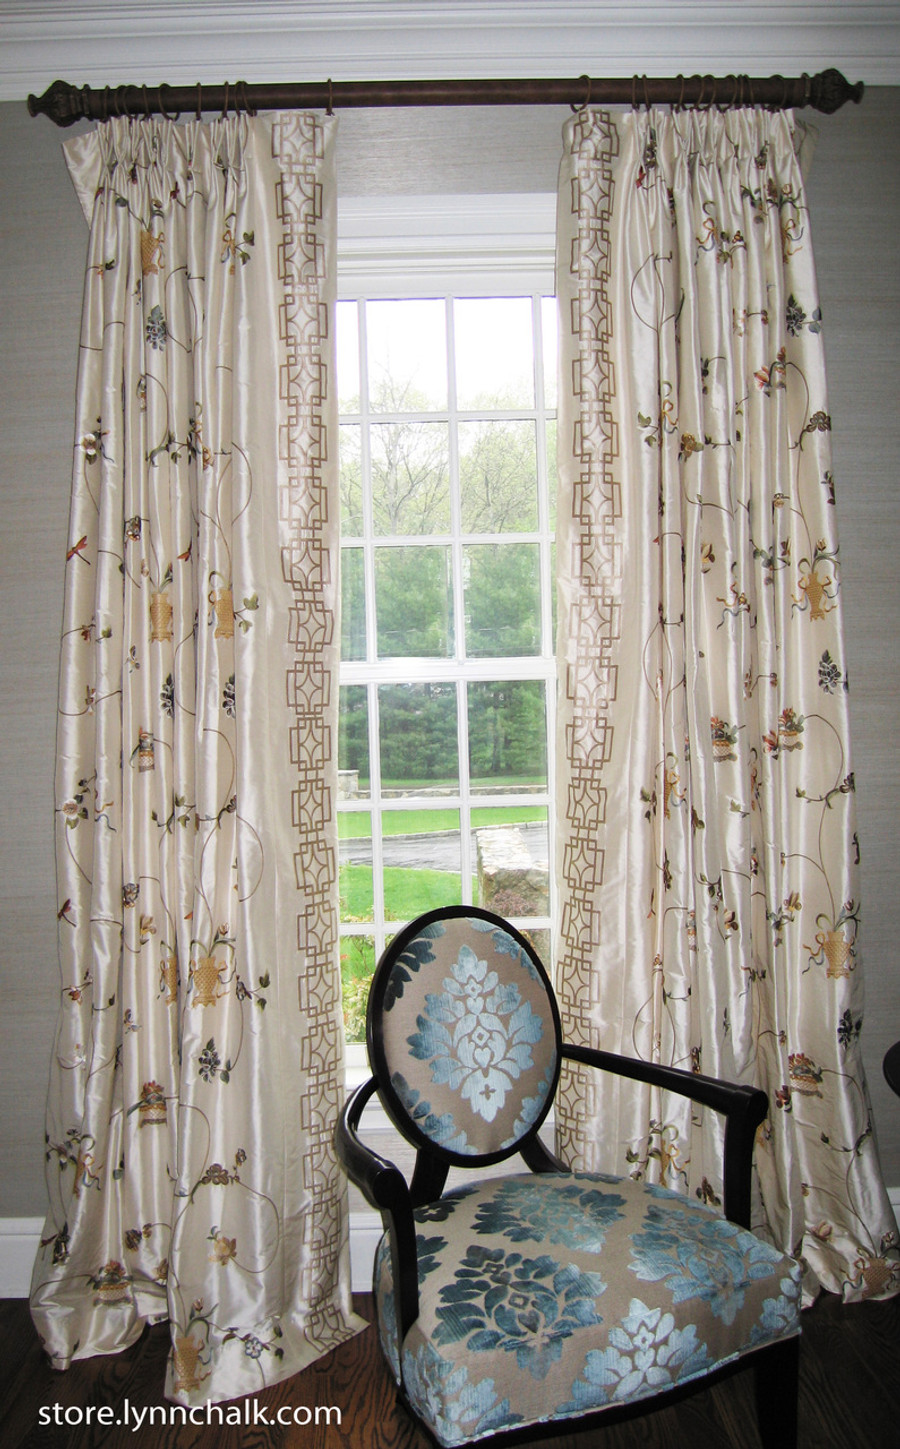 Custom Pleated Drapes by Lynn Chalk in Cowtan & Tout Chinois Border in Multi/Ivory